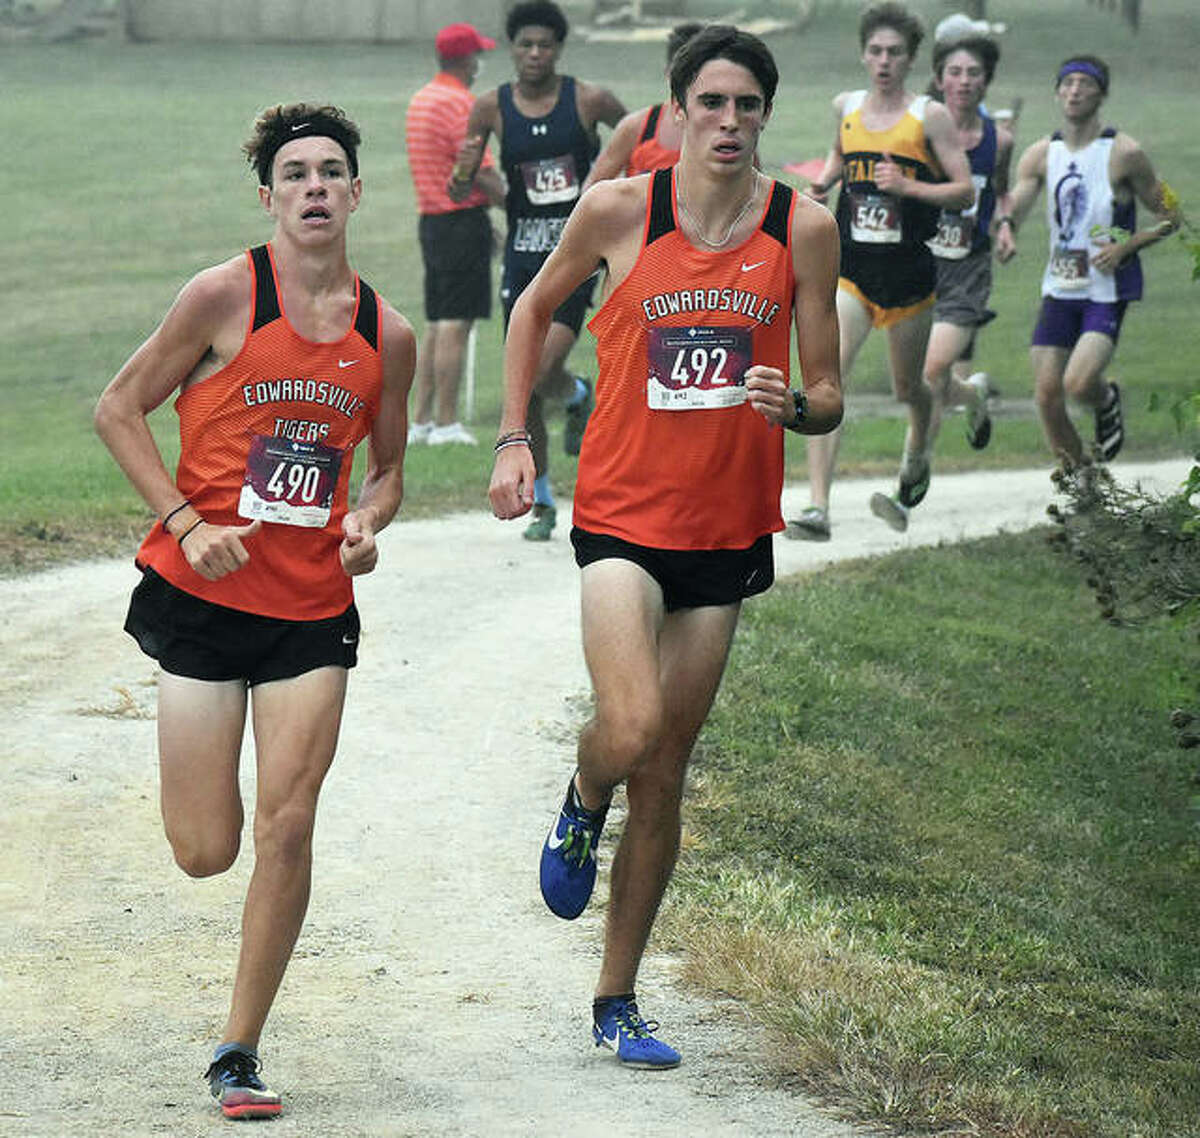 Edwardsville's Ryan Watts (right) and Geordan Patrylak lead a group of runners at Saturday's Belleville West Invite.